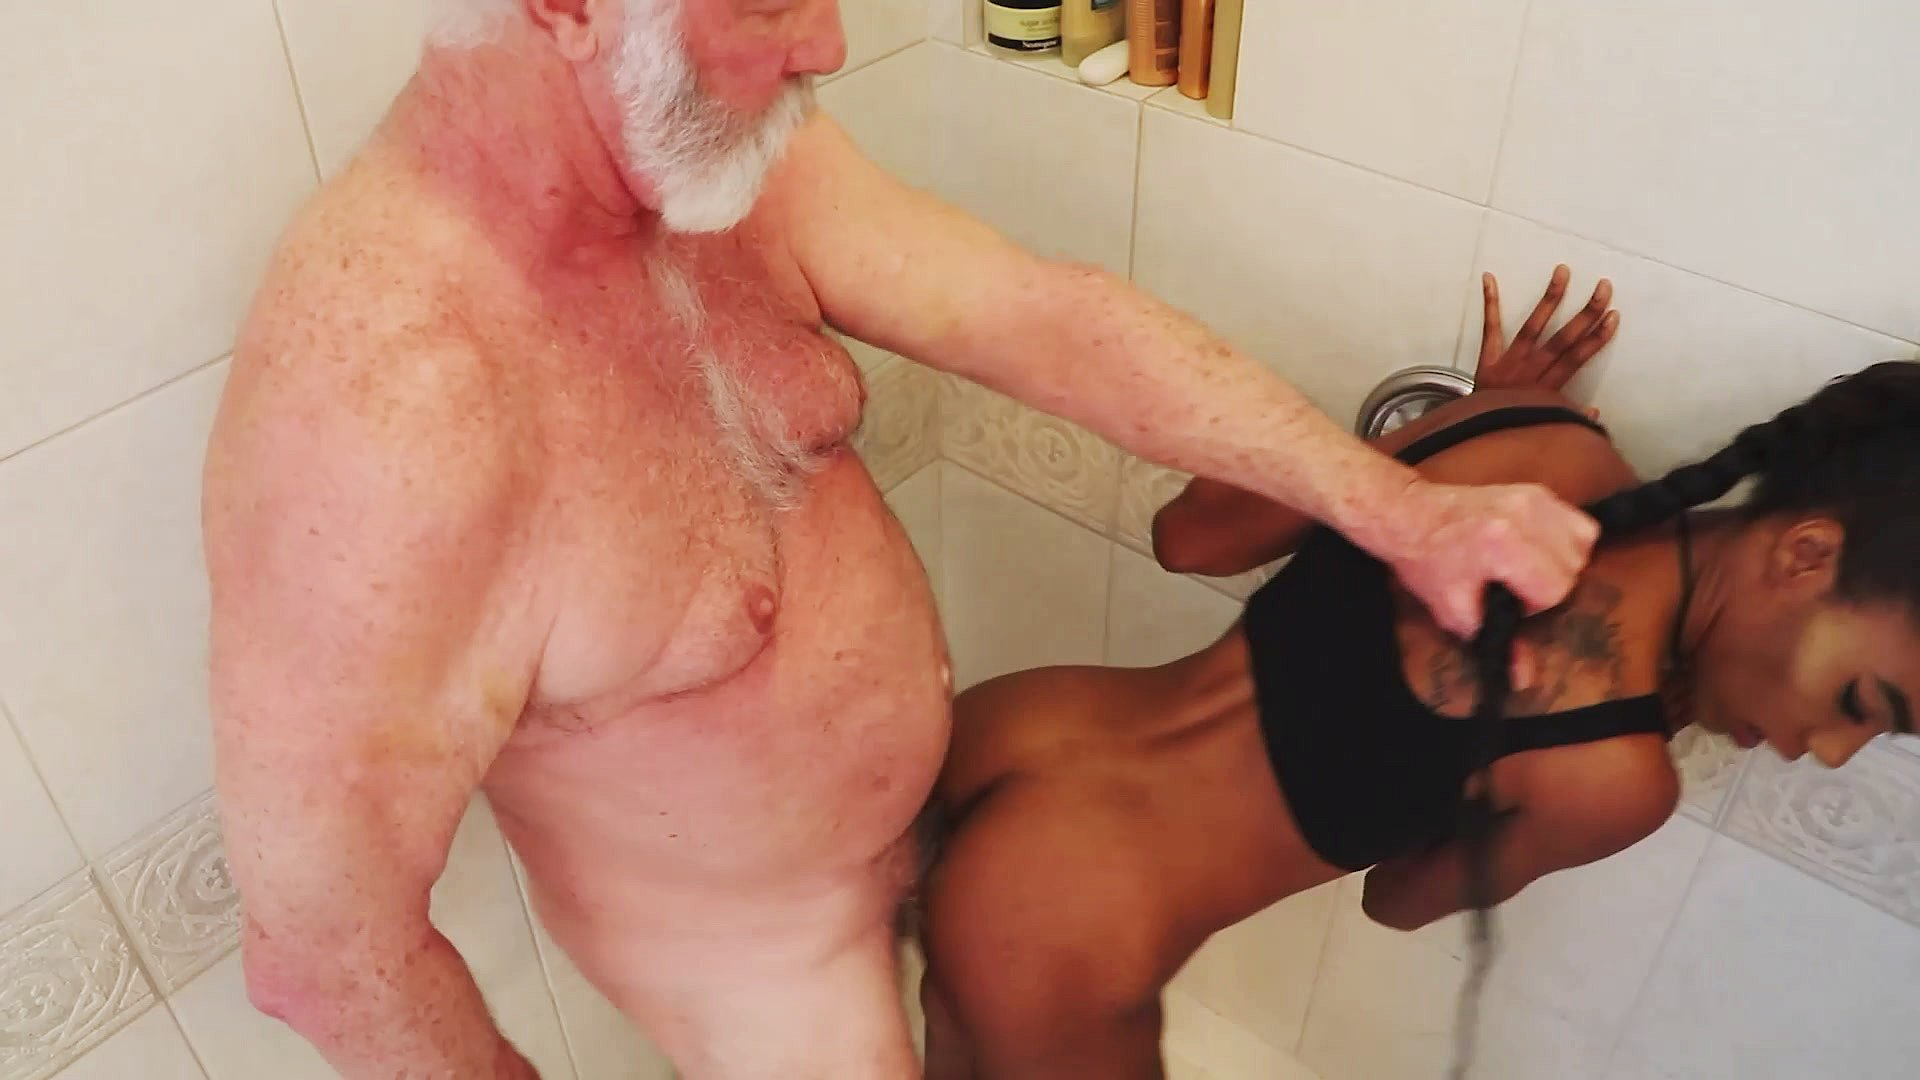 doggystyle blowjob Shower makeout